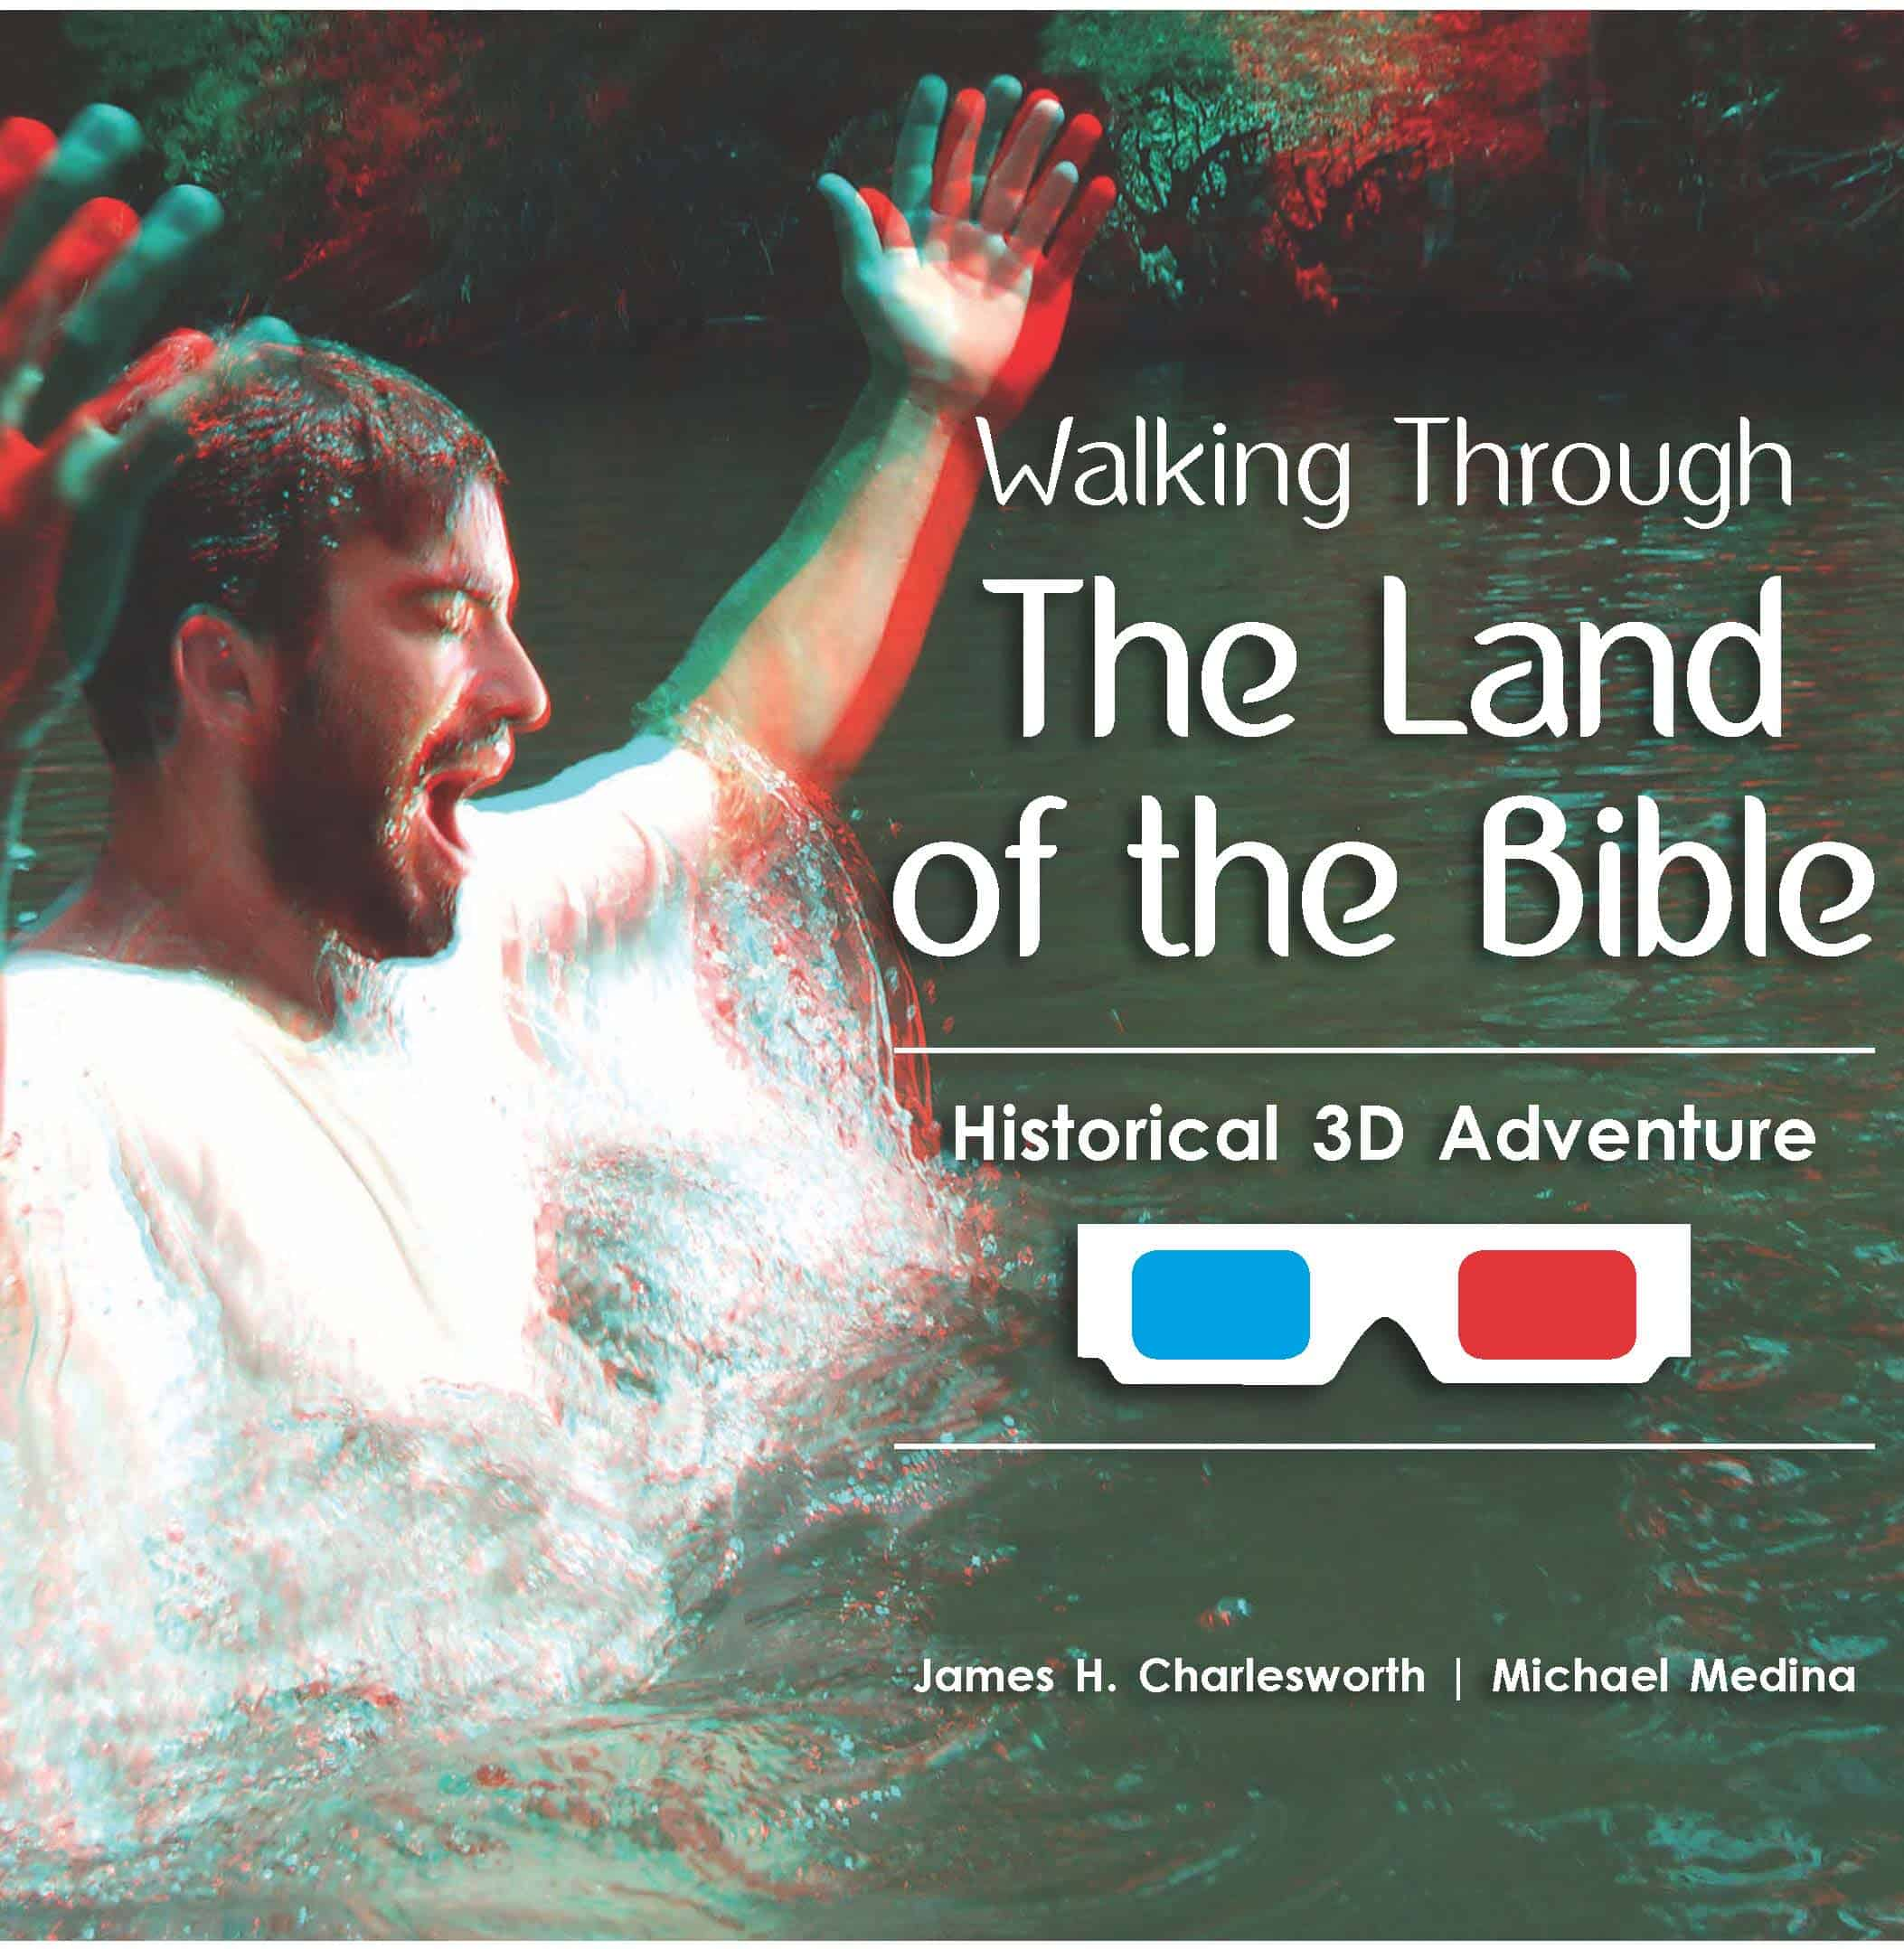 Walking Through The Land of the Bible - Historical 3D Adventure